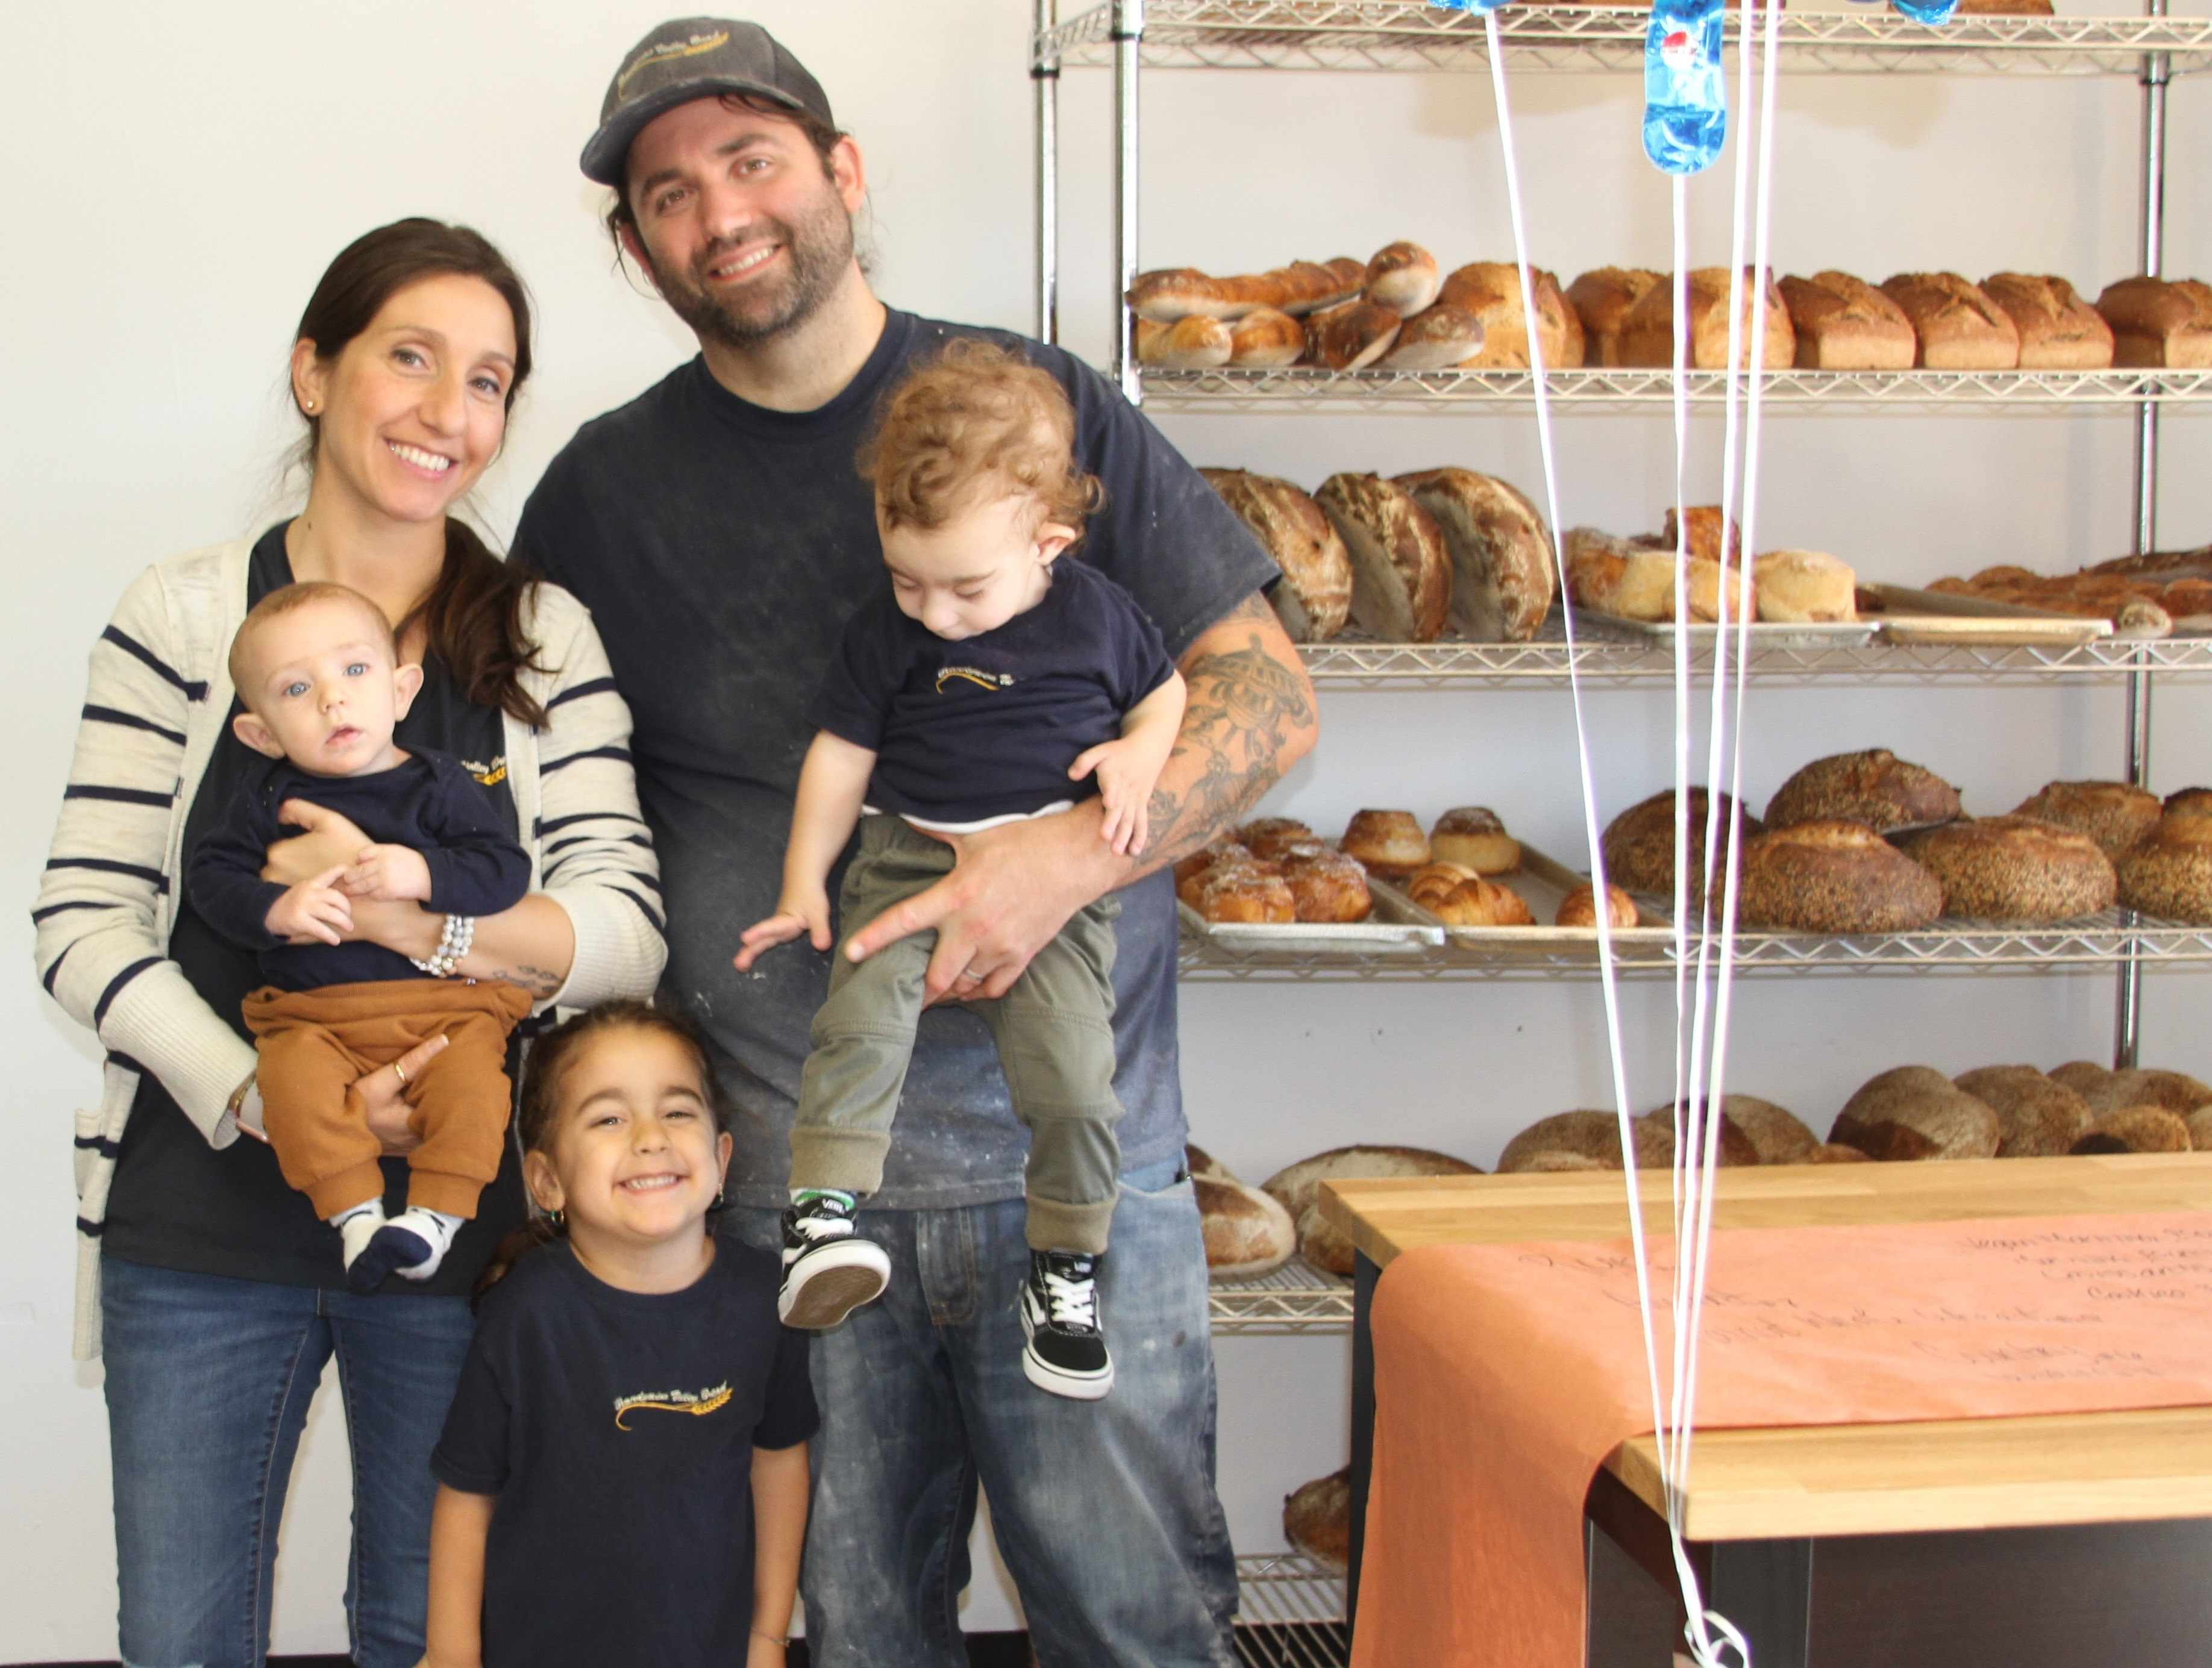 Brandywine Valley Bread Opens Storefront in Downingtown to Meet Growing Demand